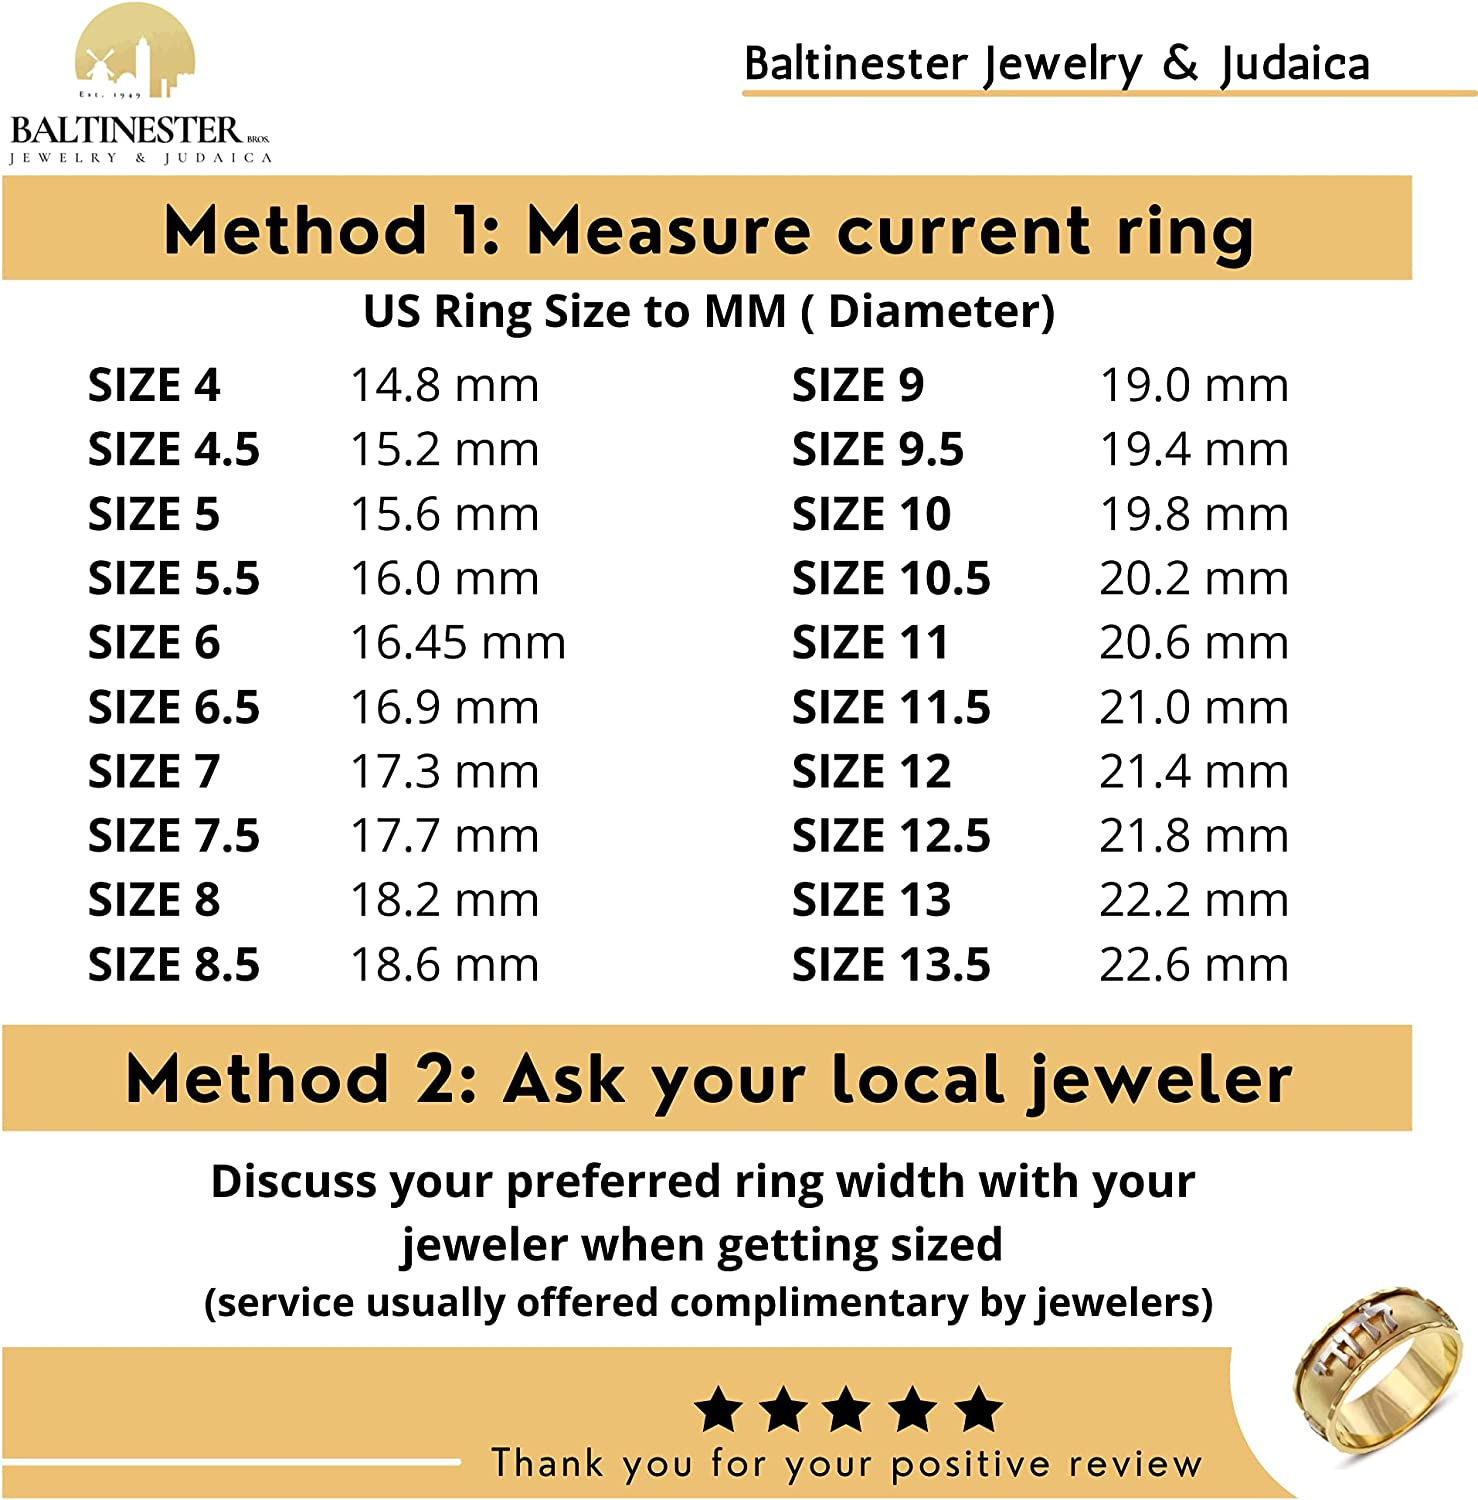 Handmade Ani Ledodi Cut Out Hebrew Letters Wedding Band Ring in 14k Yellow Gold Size 4 to 13.5 by Baltinester Jewelry